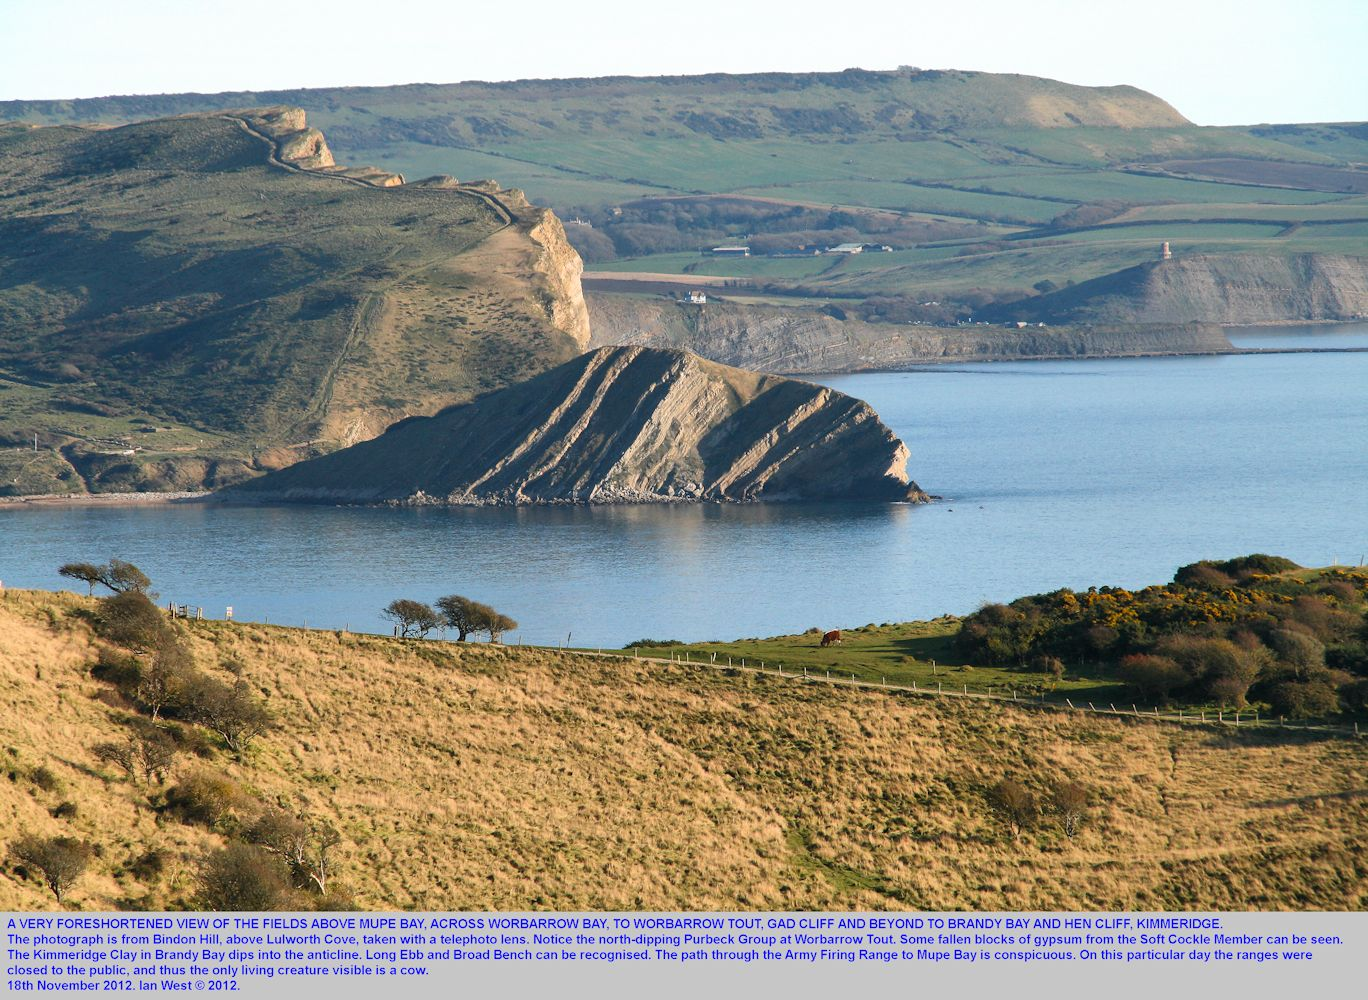 A foreshortened photograph from Bindon Hill, above Lulworth Cove, across Mupe Bay, Worbarrow Bay to Kimmeridge, Dorset, 2012